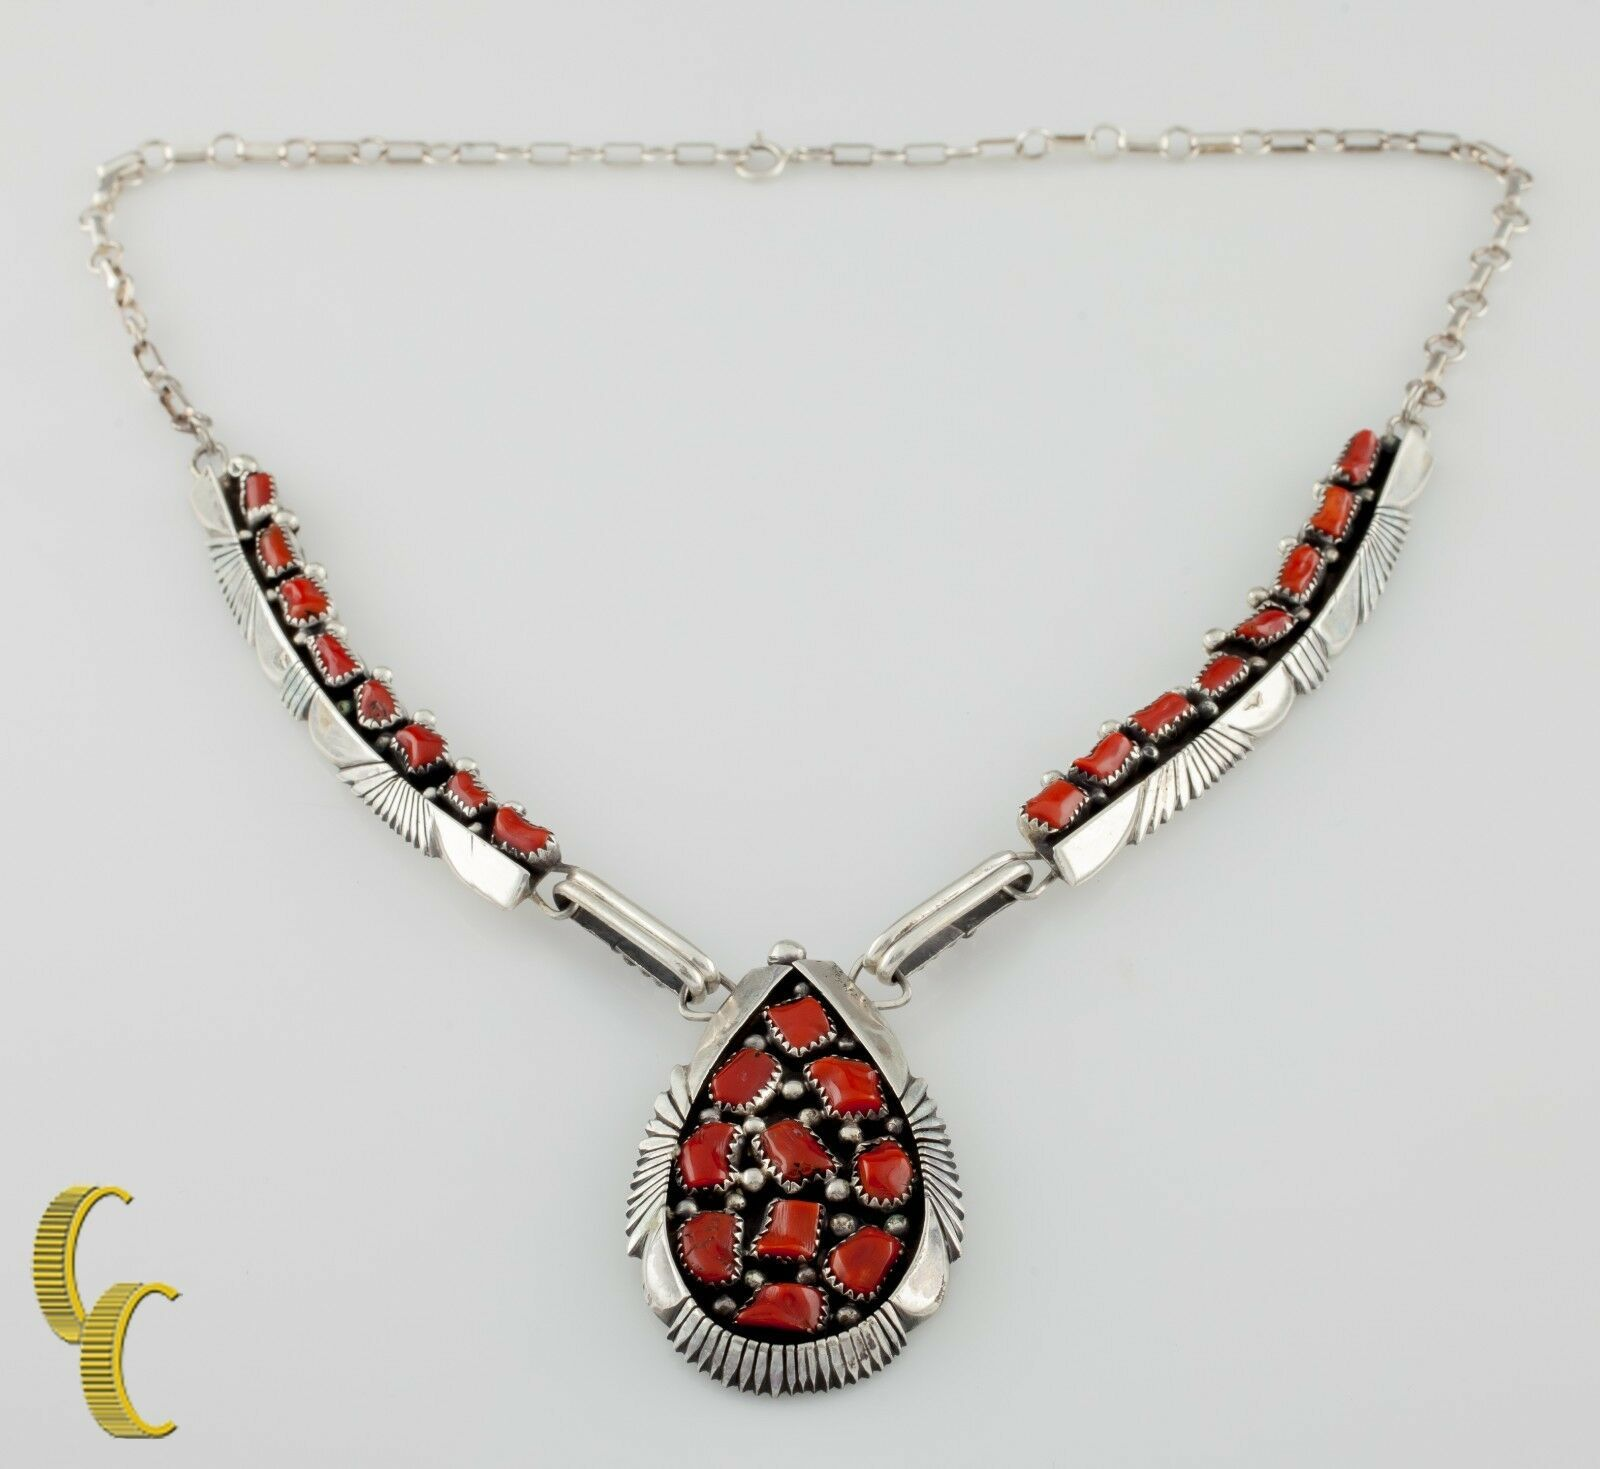 Primary image for Benjamin Piaso Corallo & .925 Argento Sterling Navajo Collana